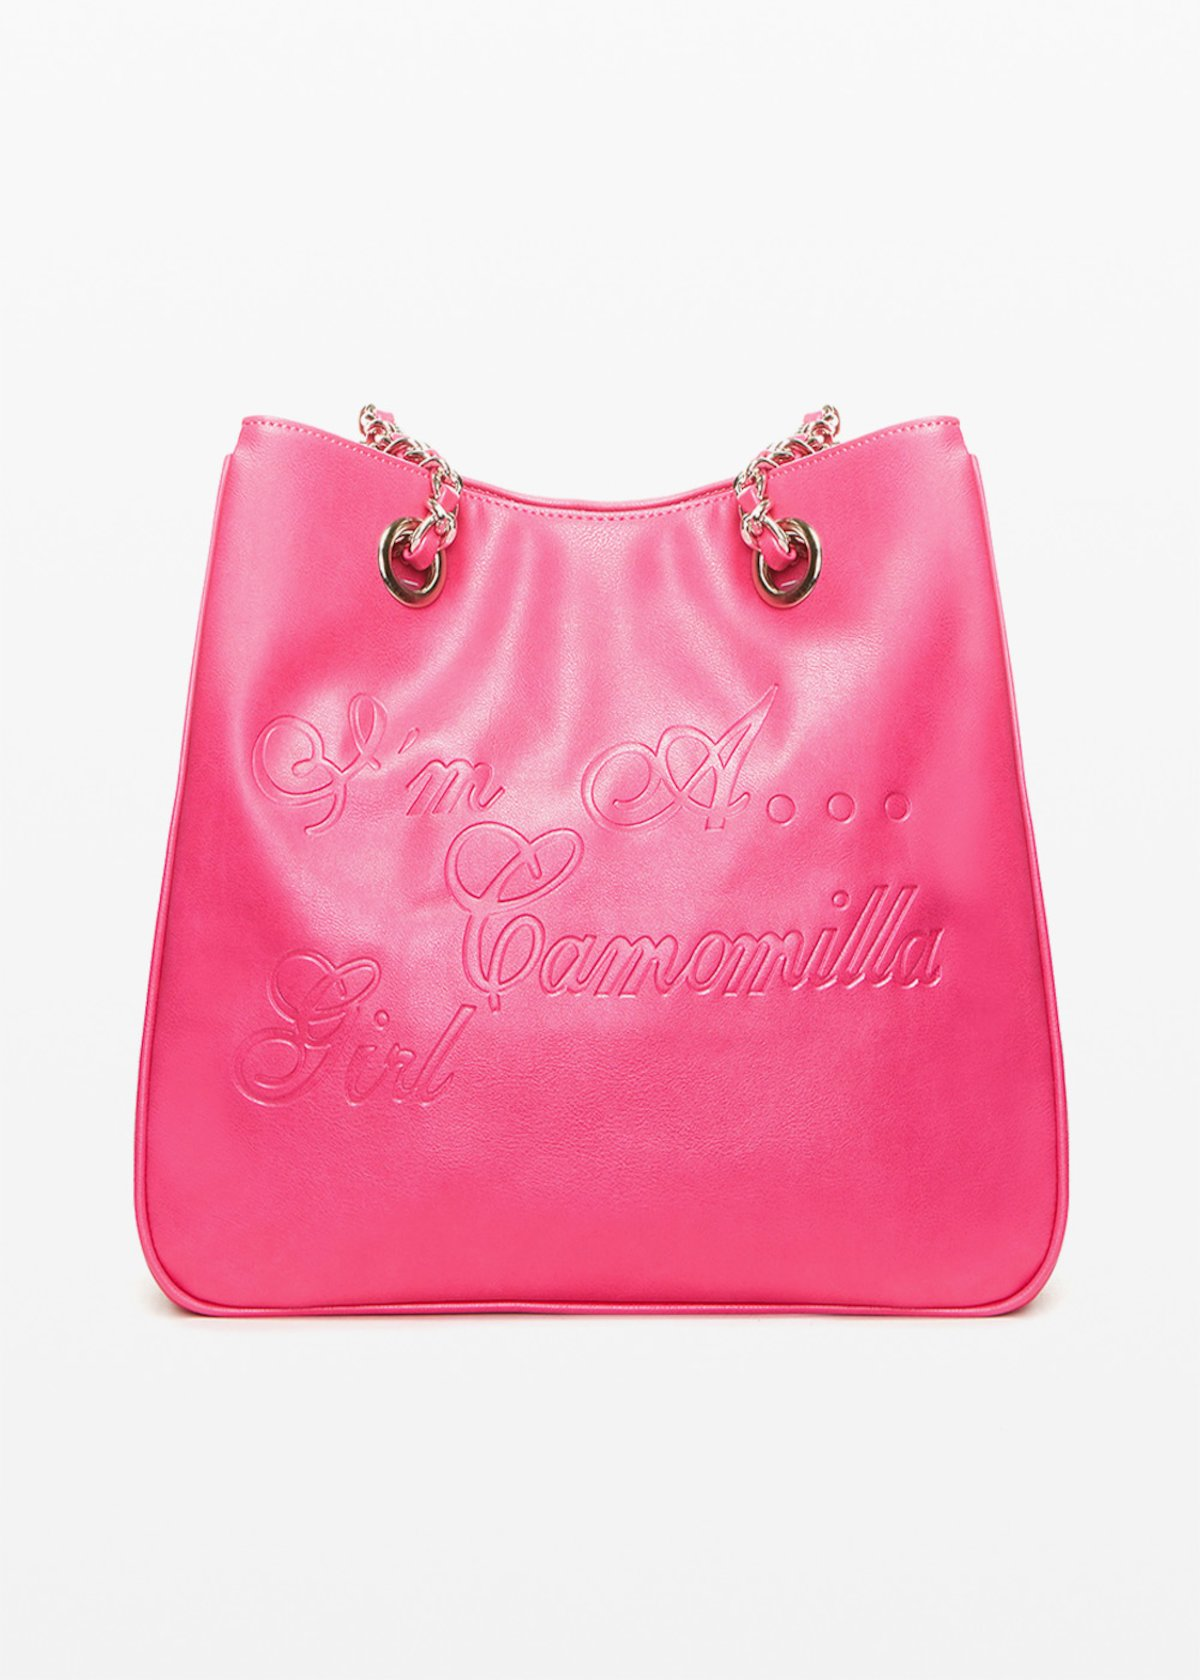 Shopping bag Minicamog in ecopelle con logo embossed